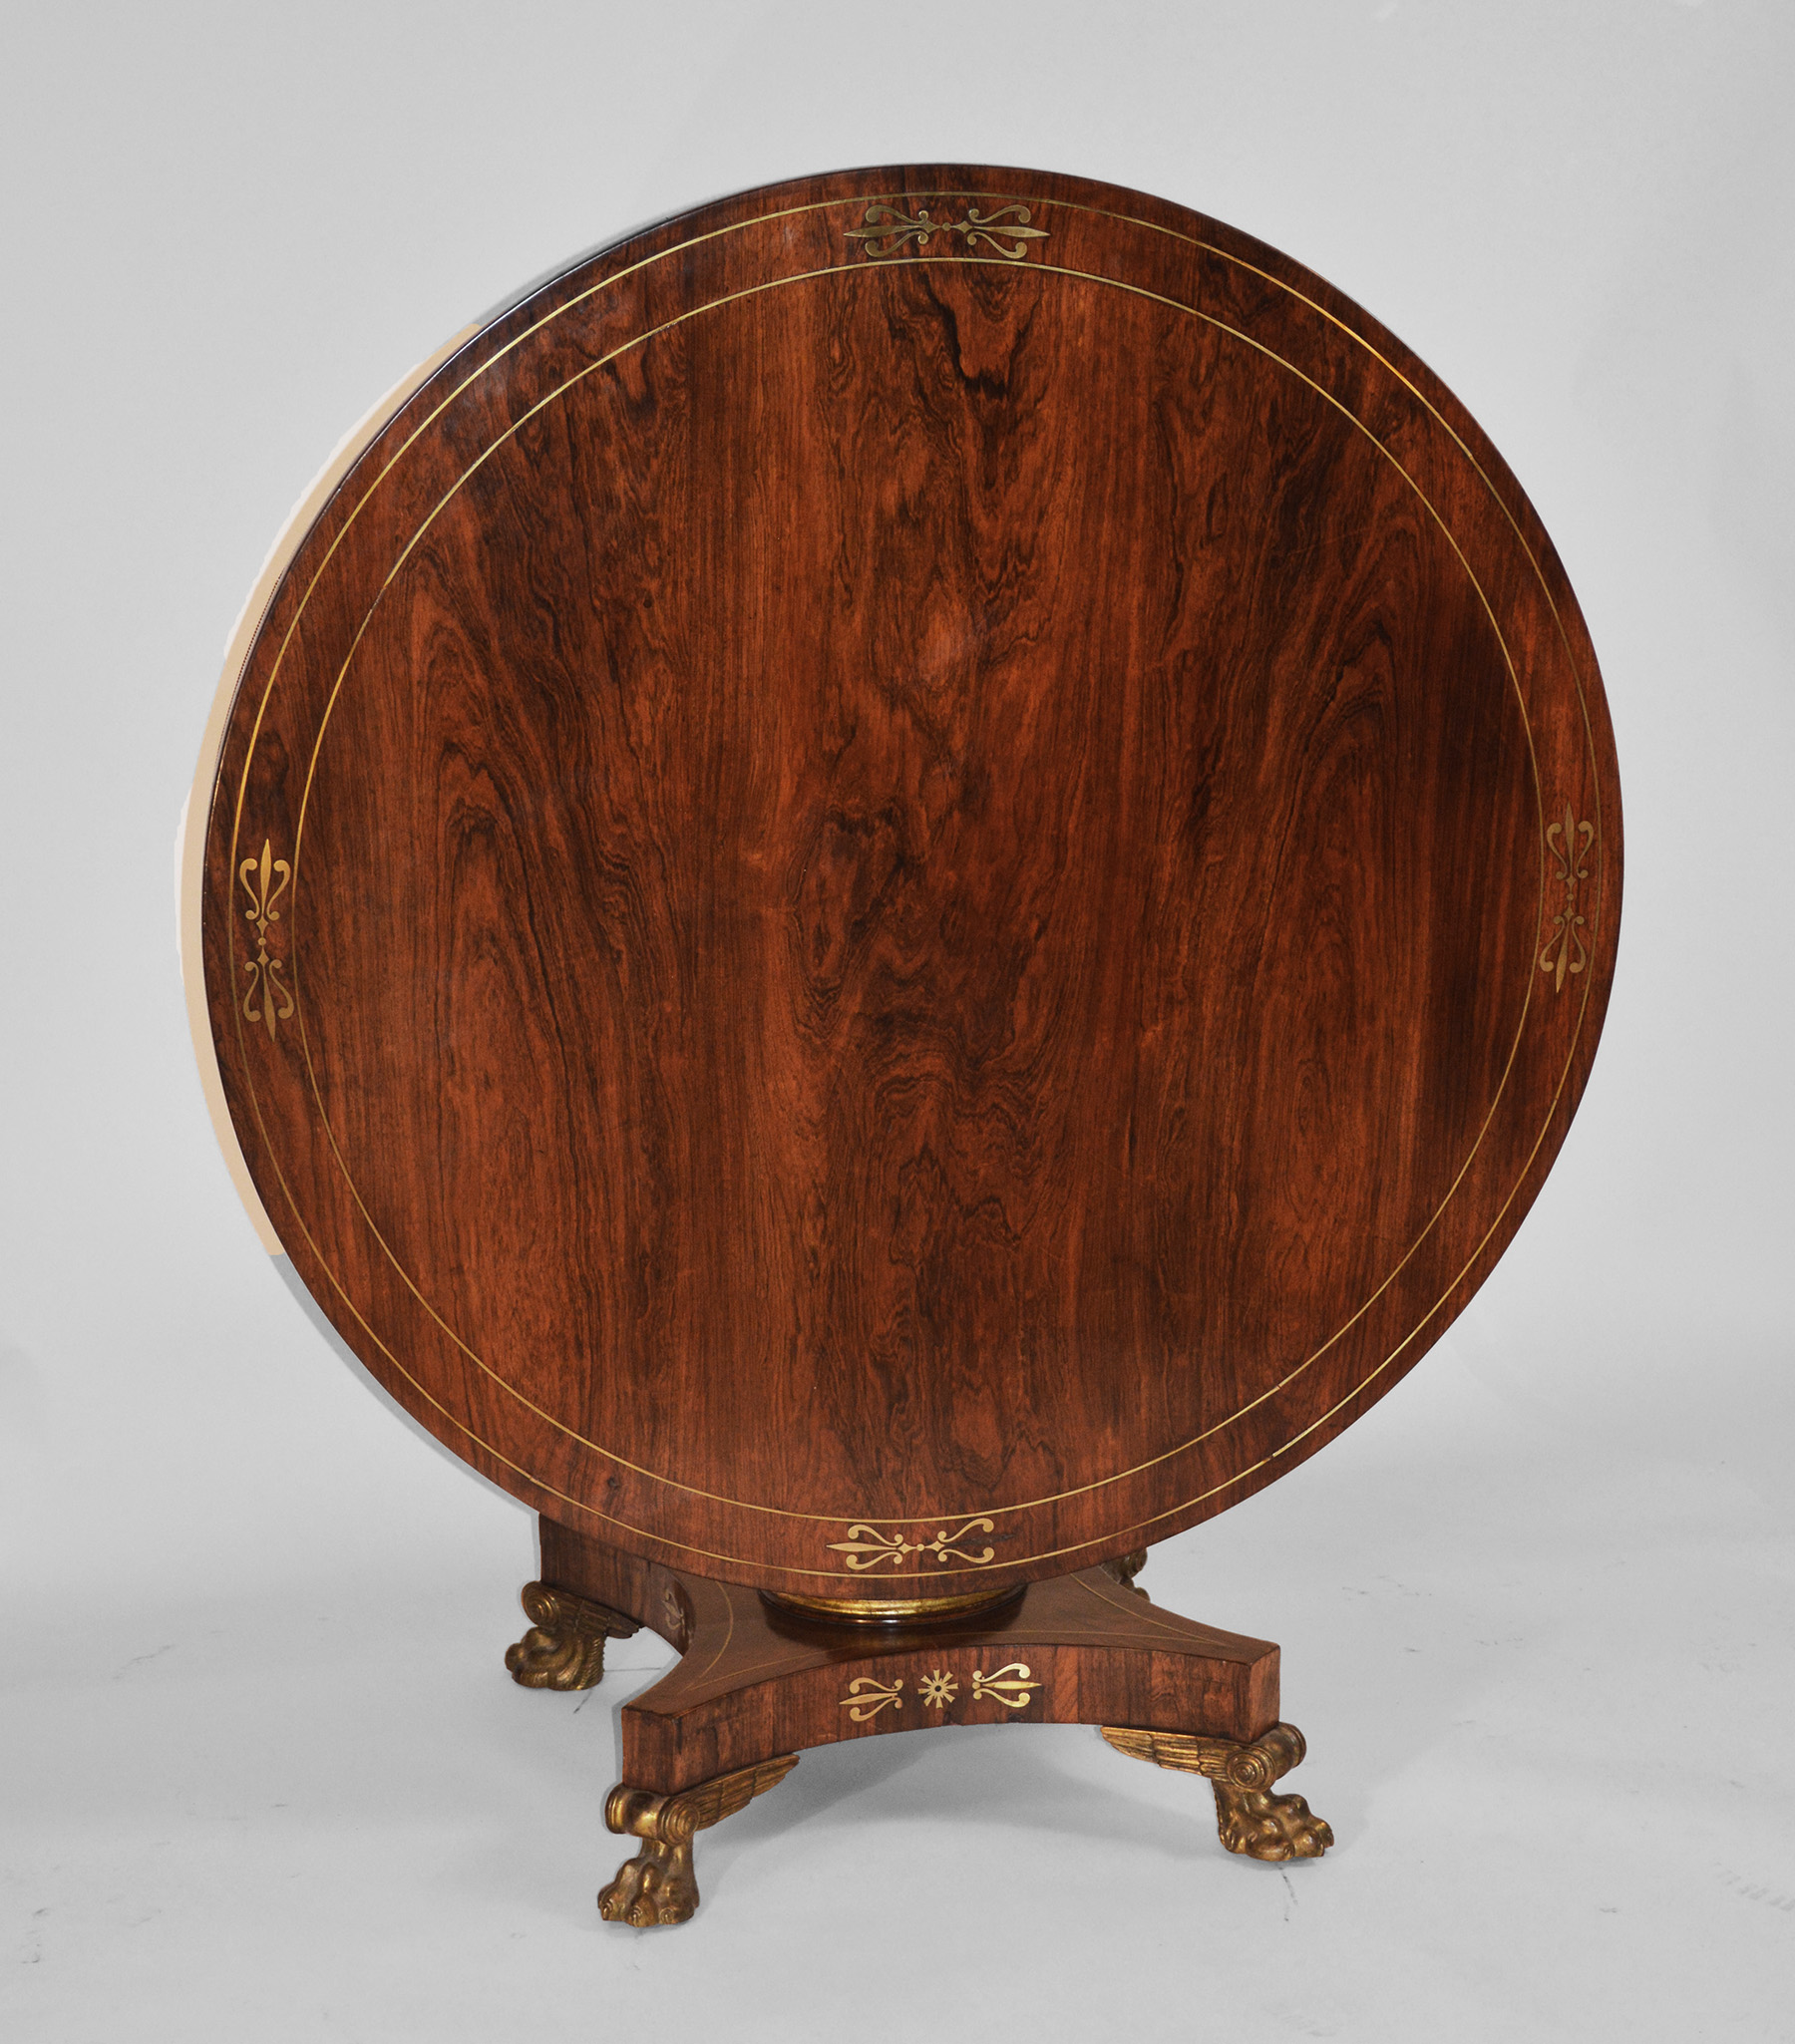 Very fine, English Regency period, rosewood and brass-inlaid center table